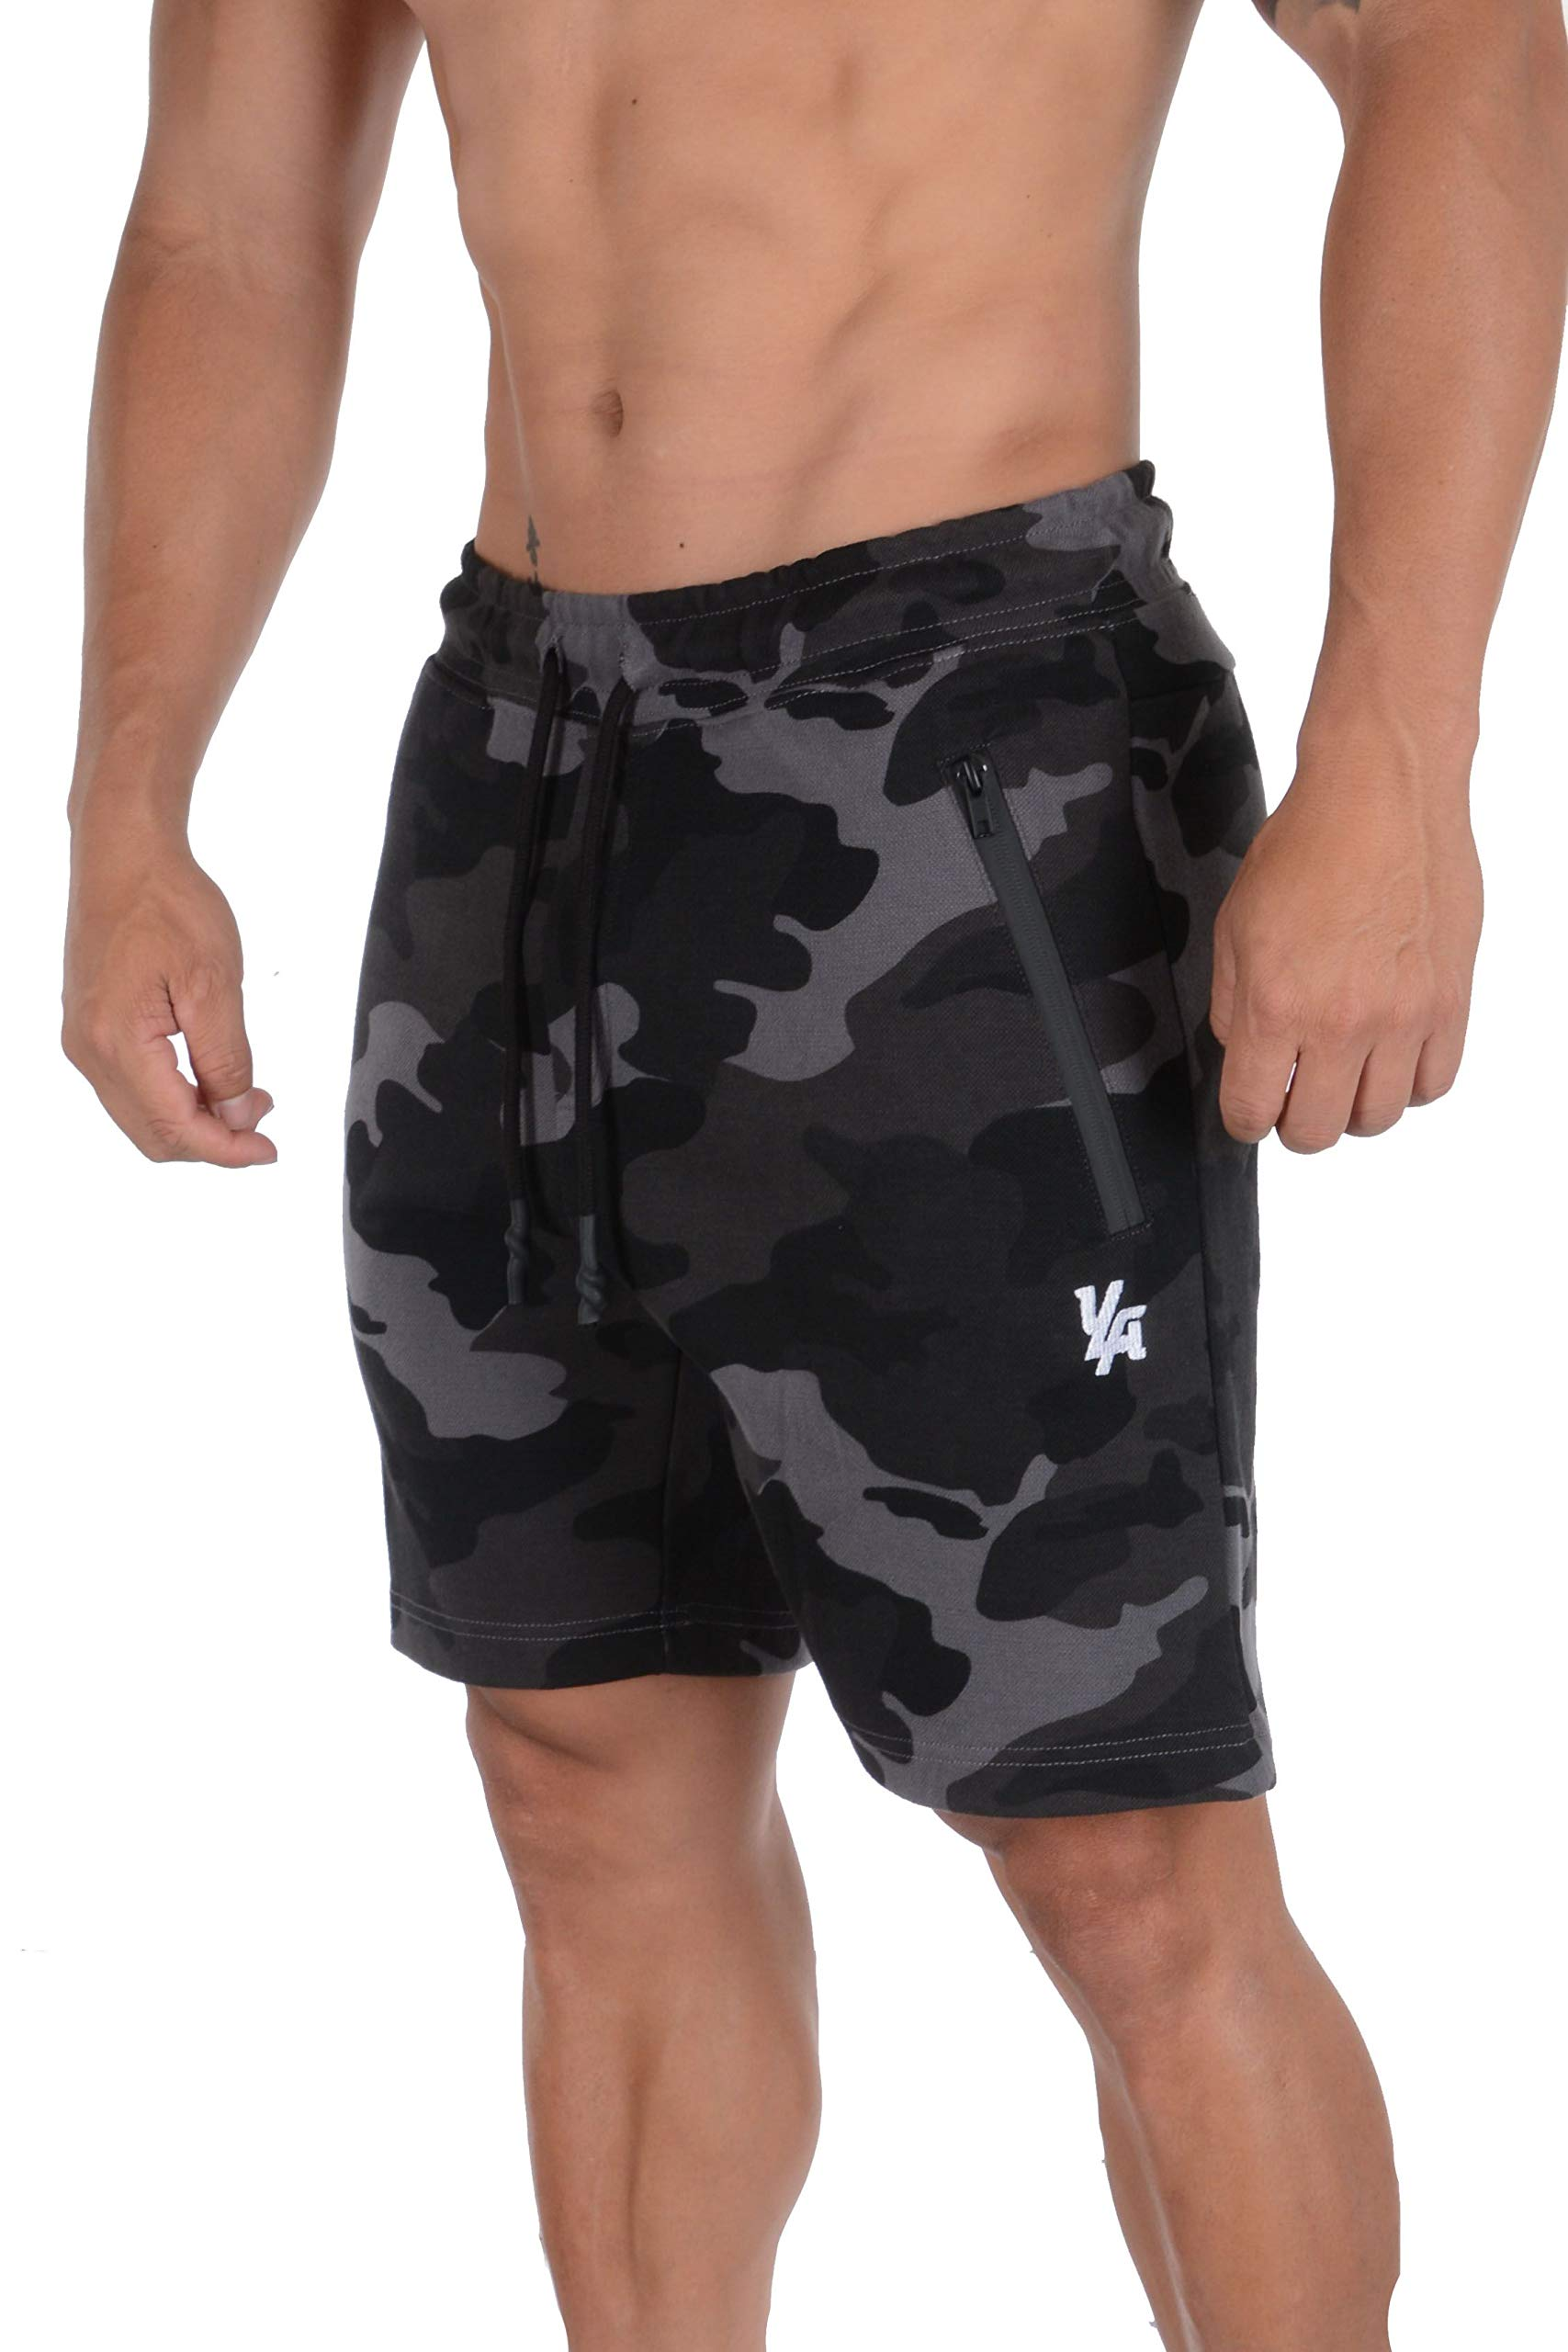 YoungLA Mens Shorts with Zipper Pockets | Casual Gym Training 108 | Camo Black Medium by YoungLA